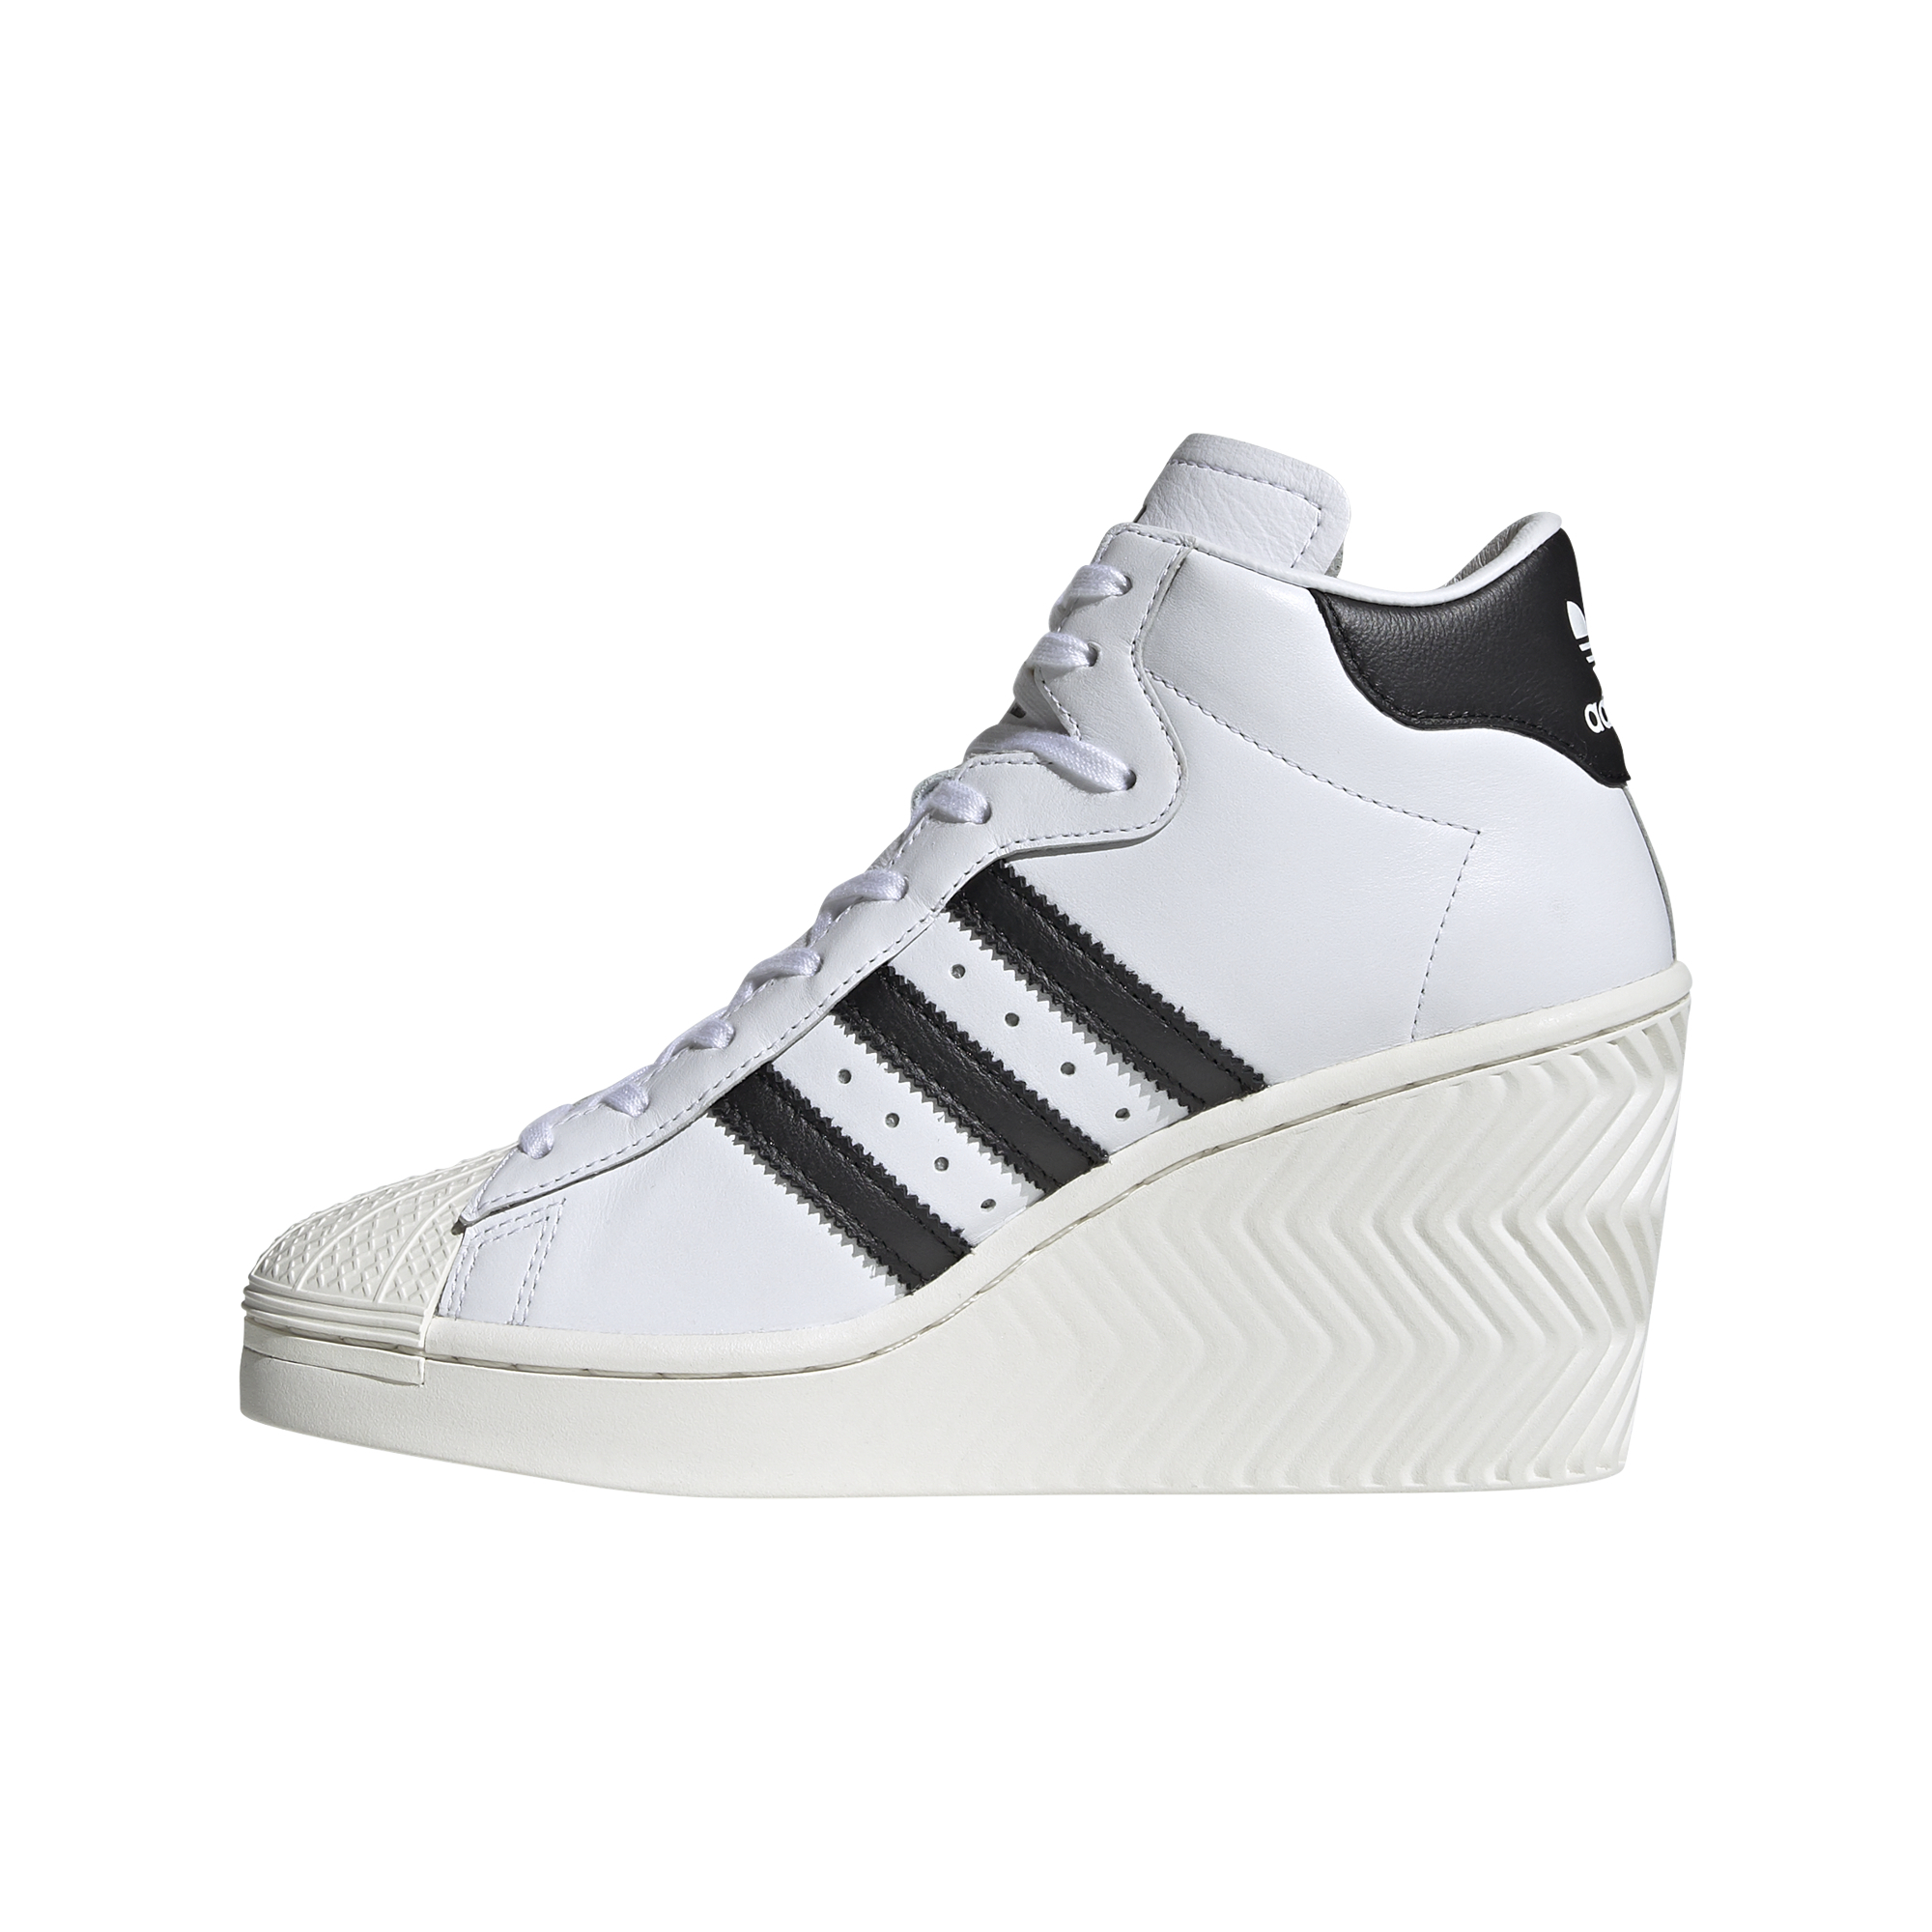 adidas Superstar Ellure W Ftw White/ Core Black/ Off White EUR 39 1/3